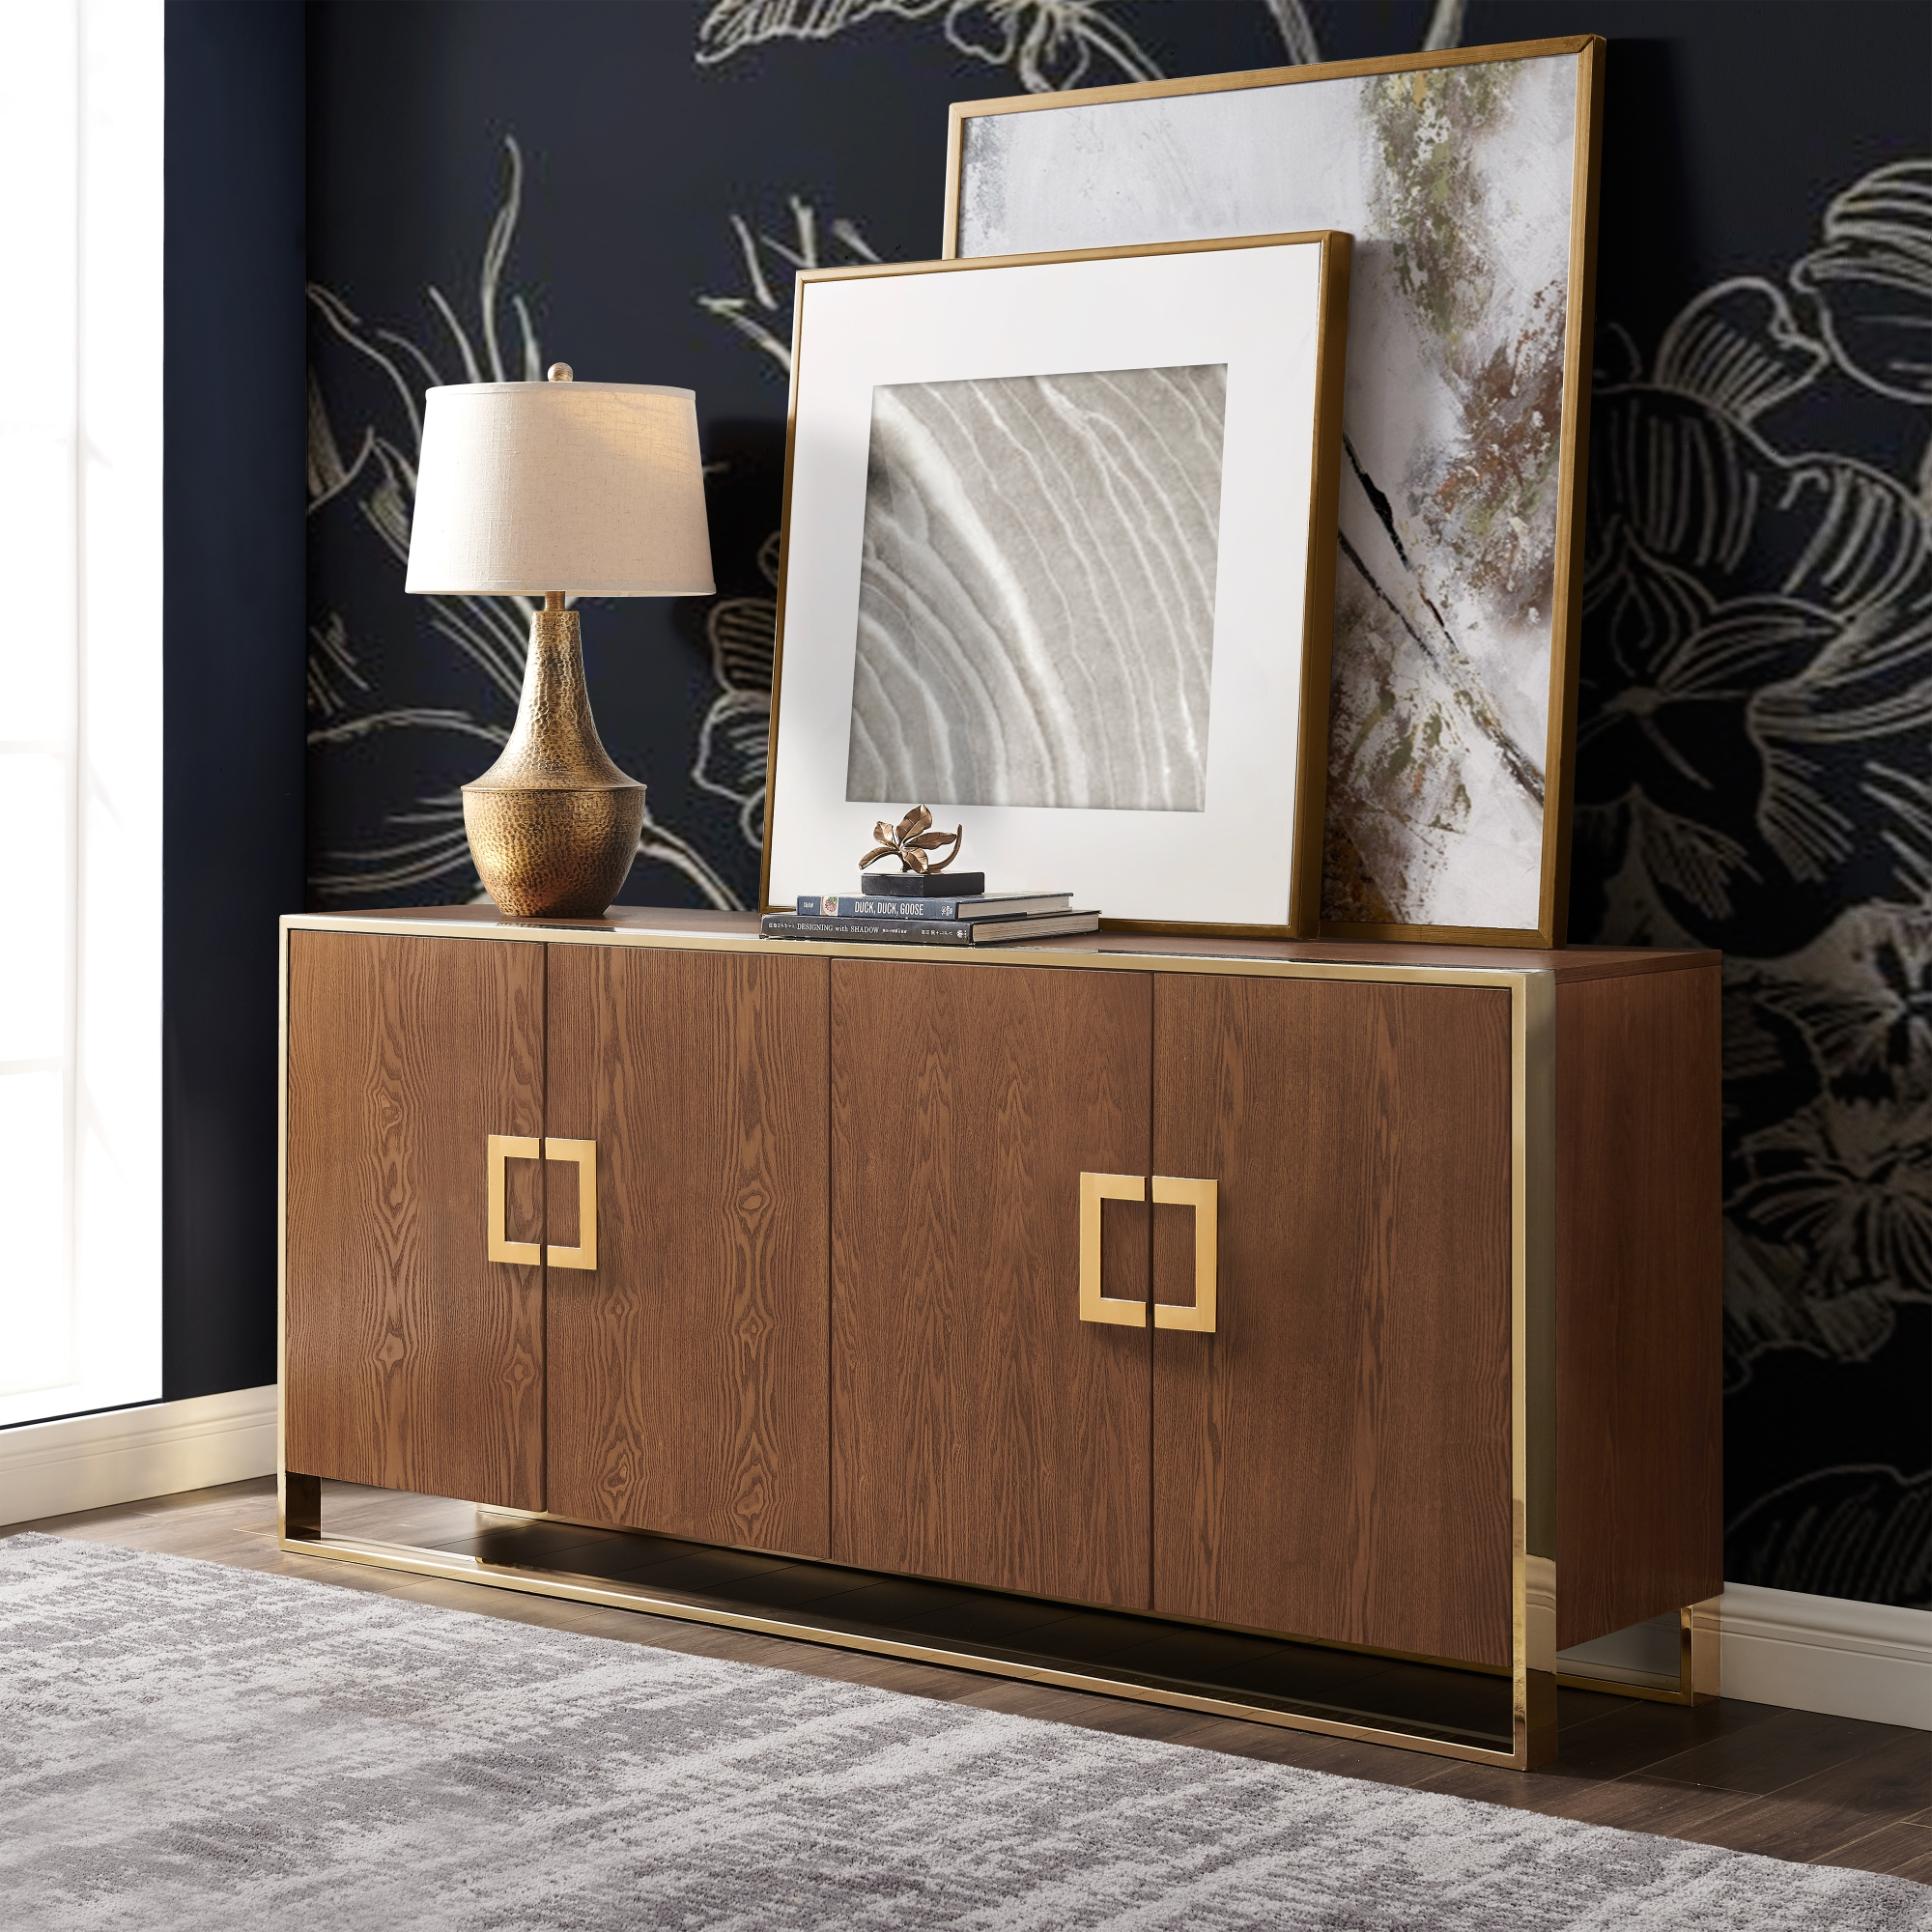 Inspired Home Ash Brown Sideboard 4 Doors Polished Gold Handle and Leg Tip